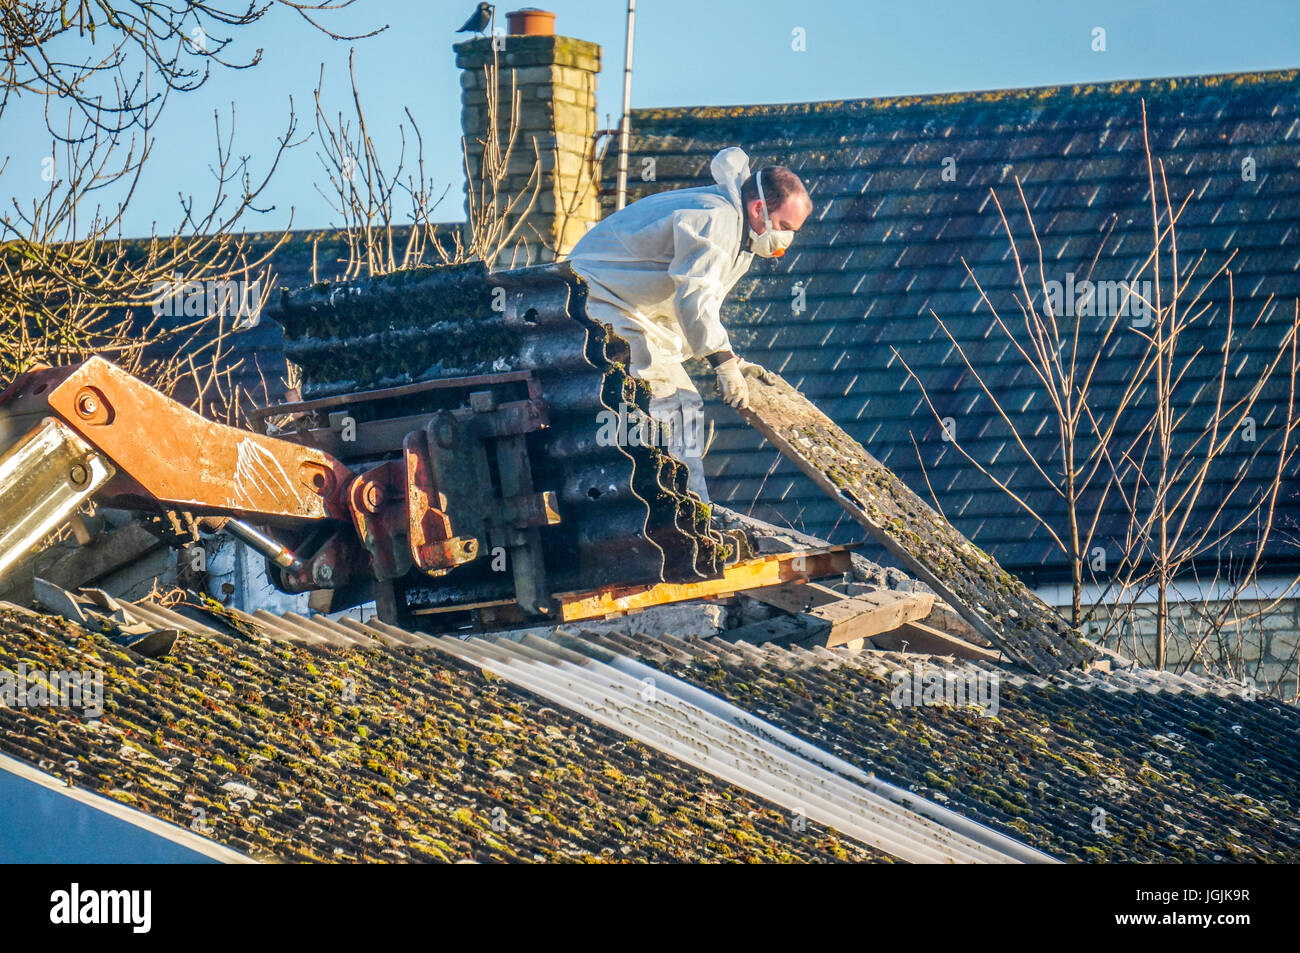 A man wearing protective clothing while removing asbestos roofing from an old barn. Lincolnshire, England, UK. - Stock Image